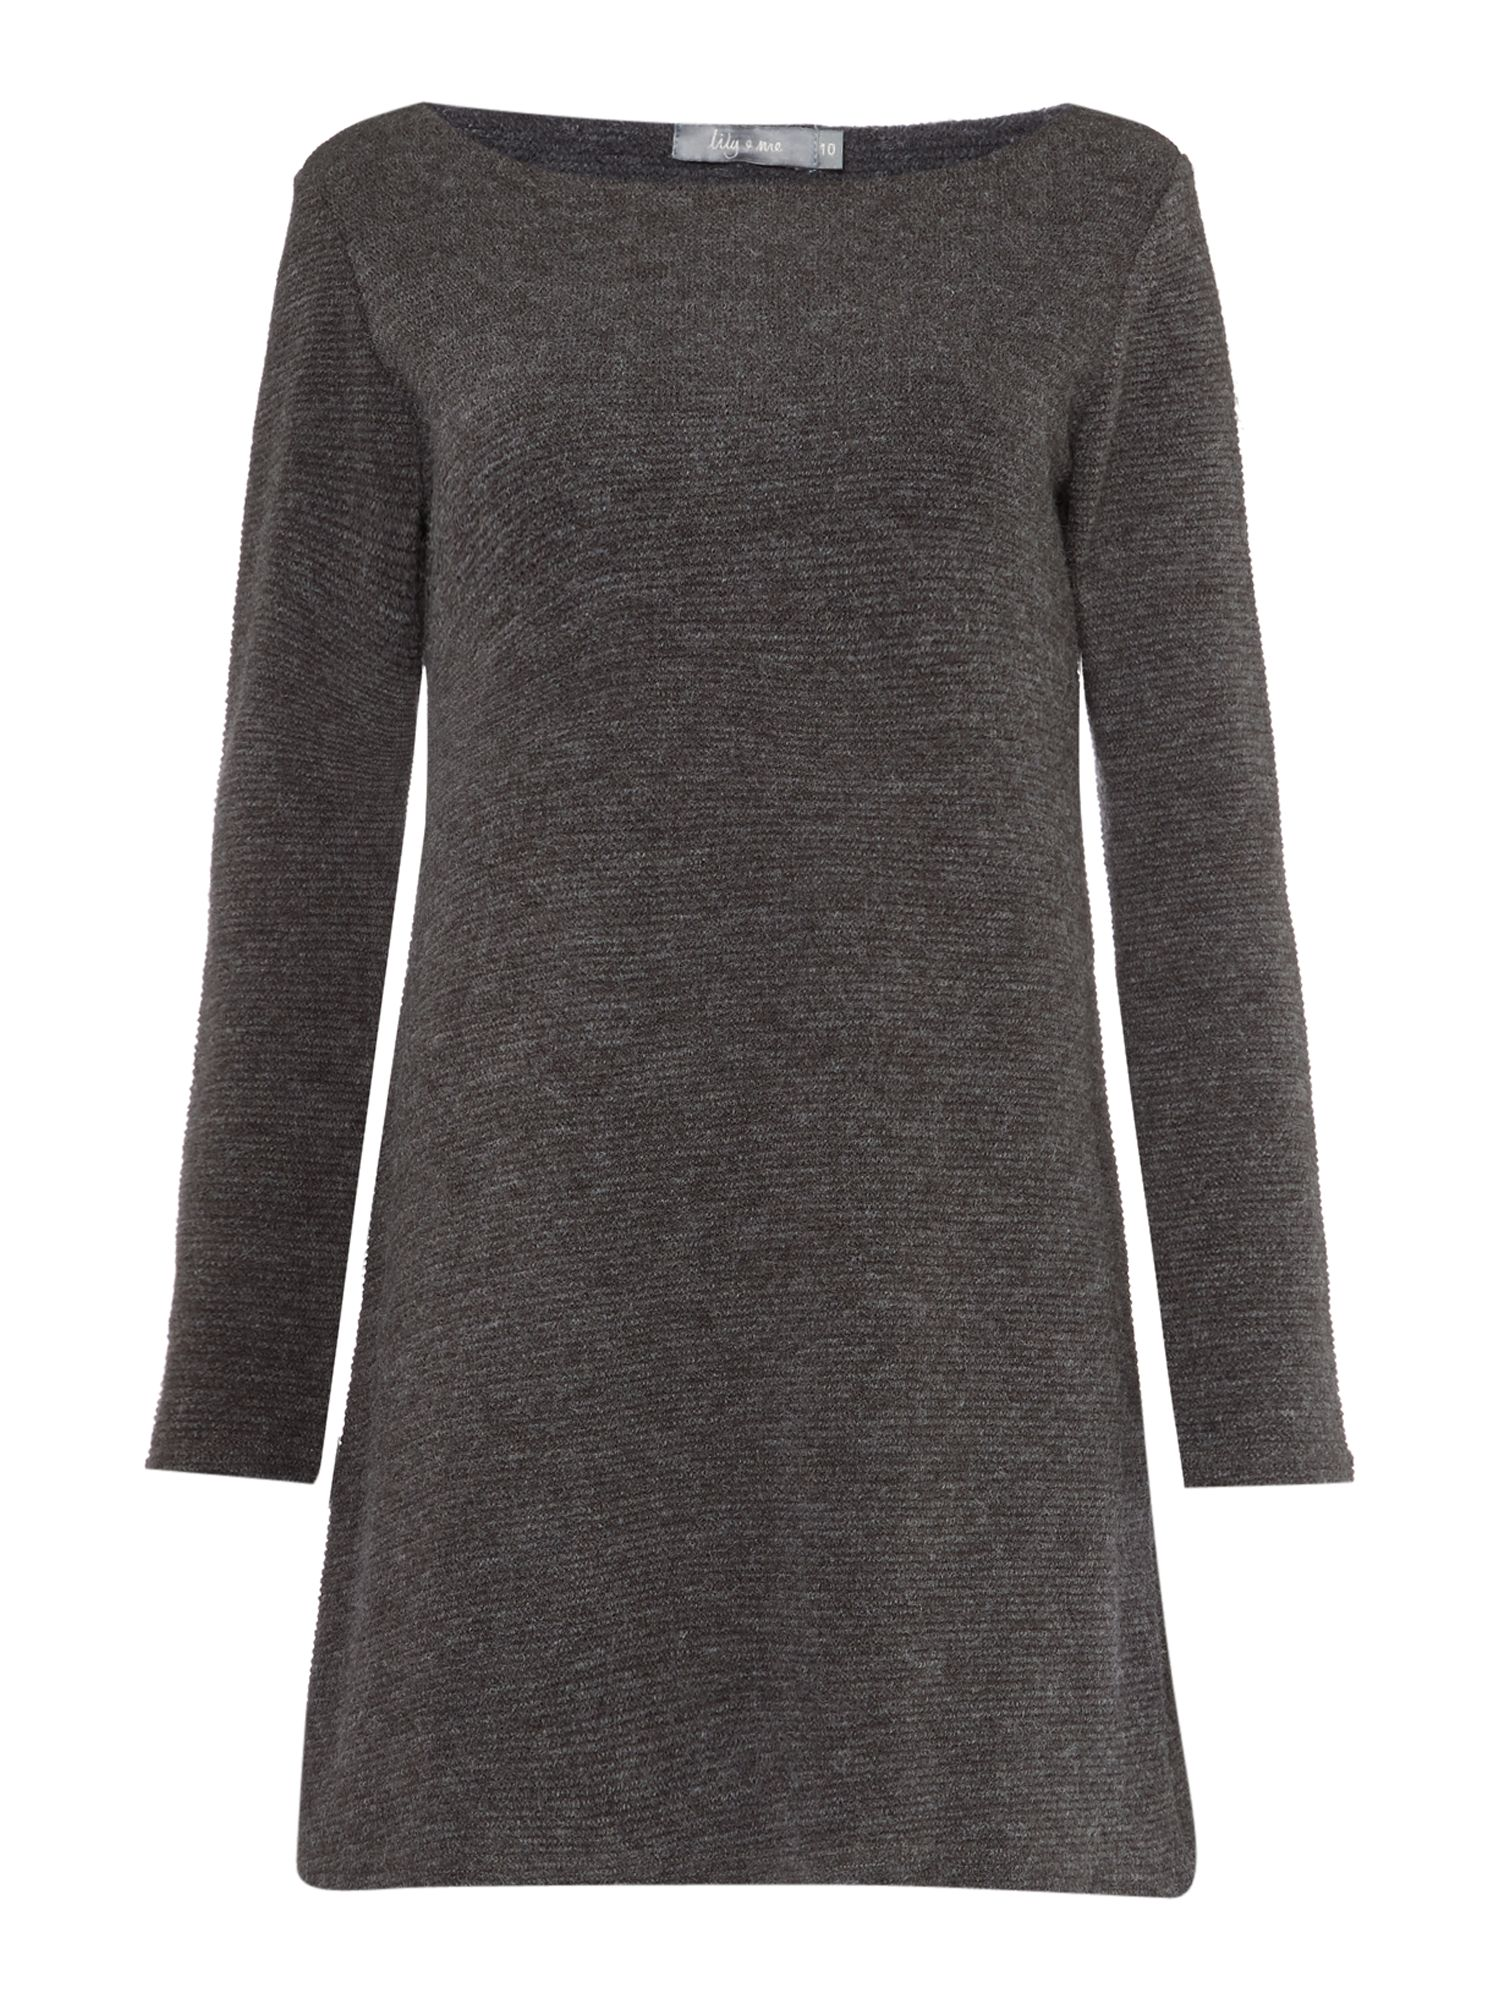 LILY & ME LILY & ME Ridge Boatneck Tunic Dress, Grey